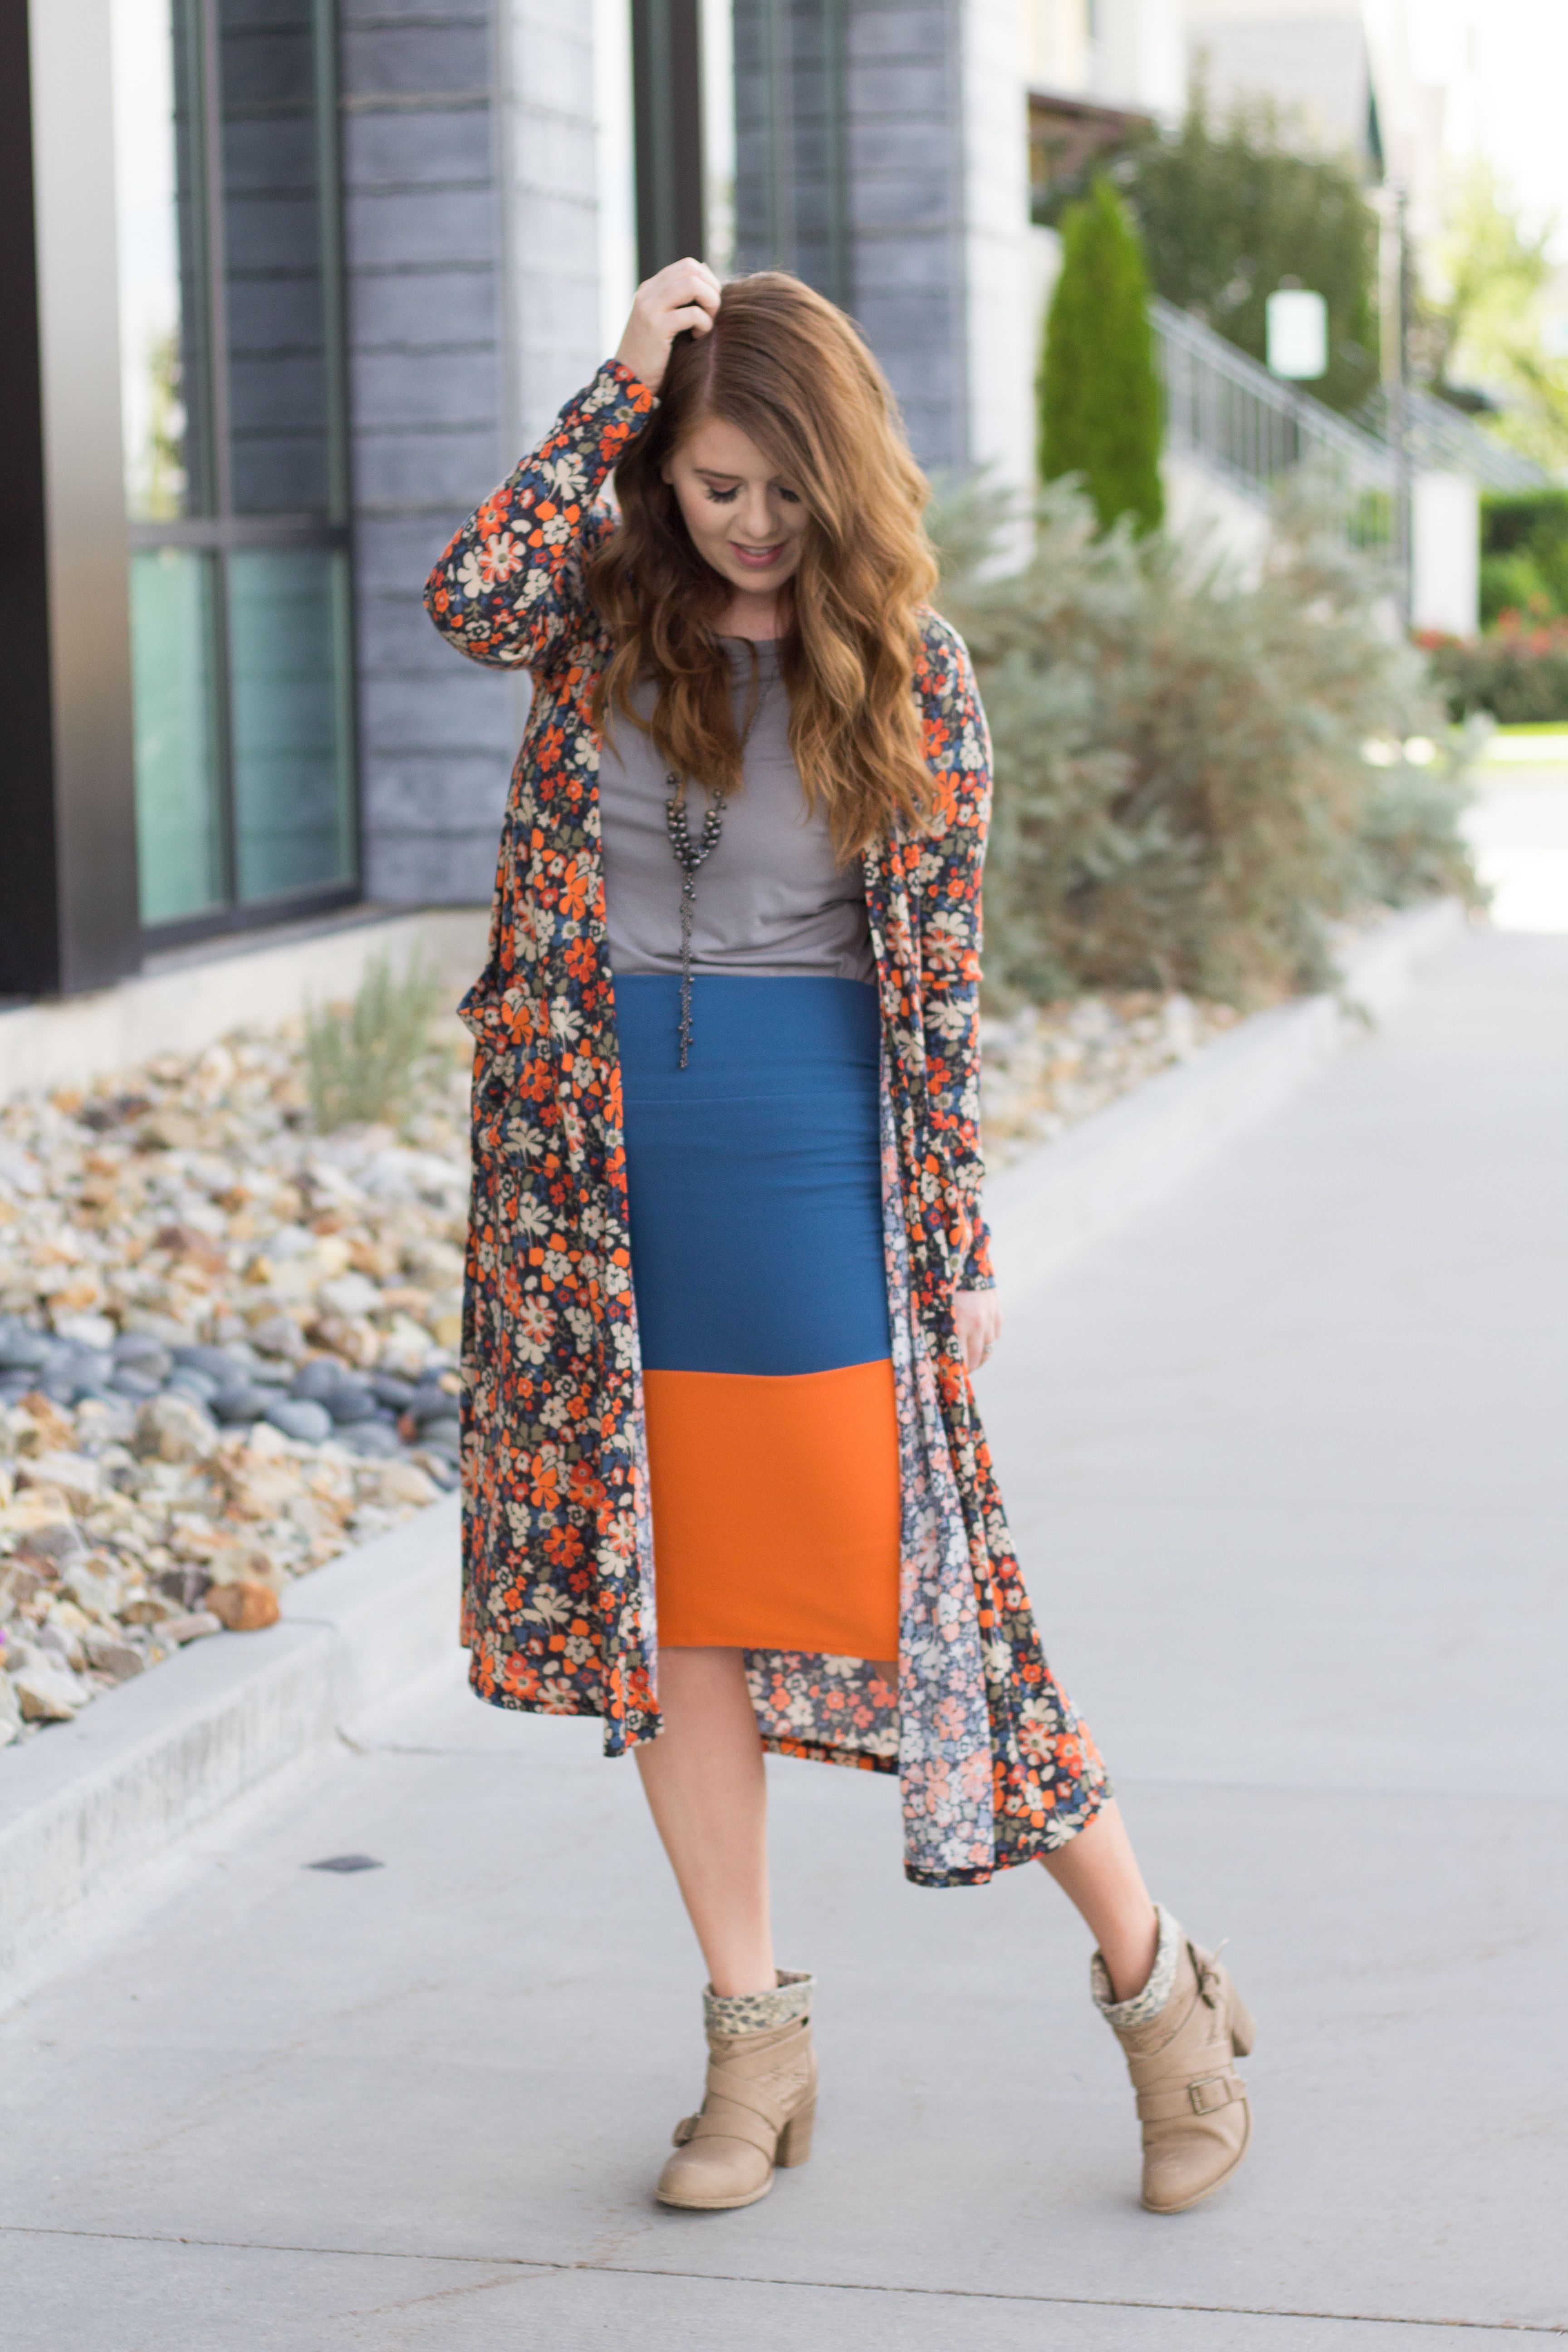 Styling a floral duster cardigan with a color-blocked pencil skirt. I love styling pencil skirts in different ways with different shoe options. This outfit idea is perfect for fall and spring.